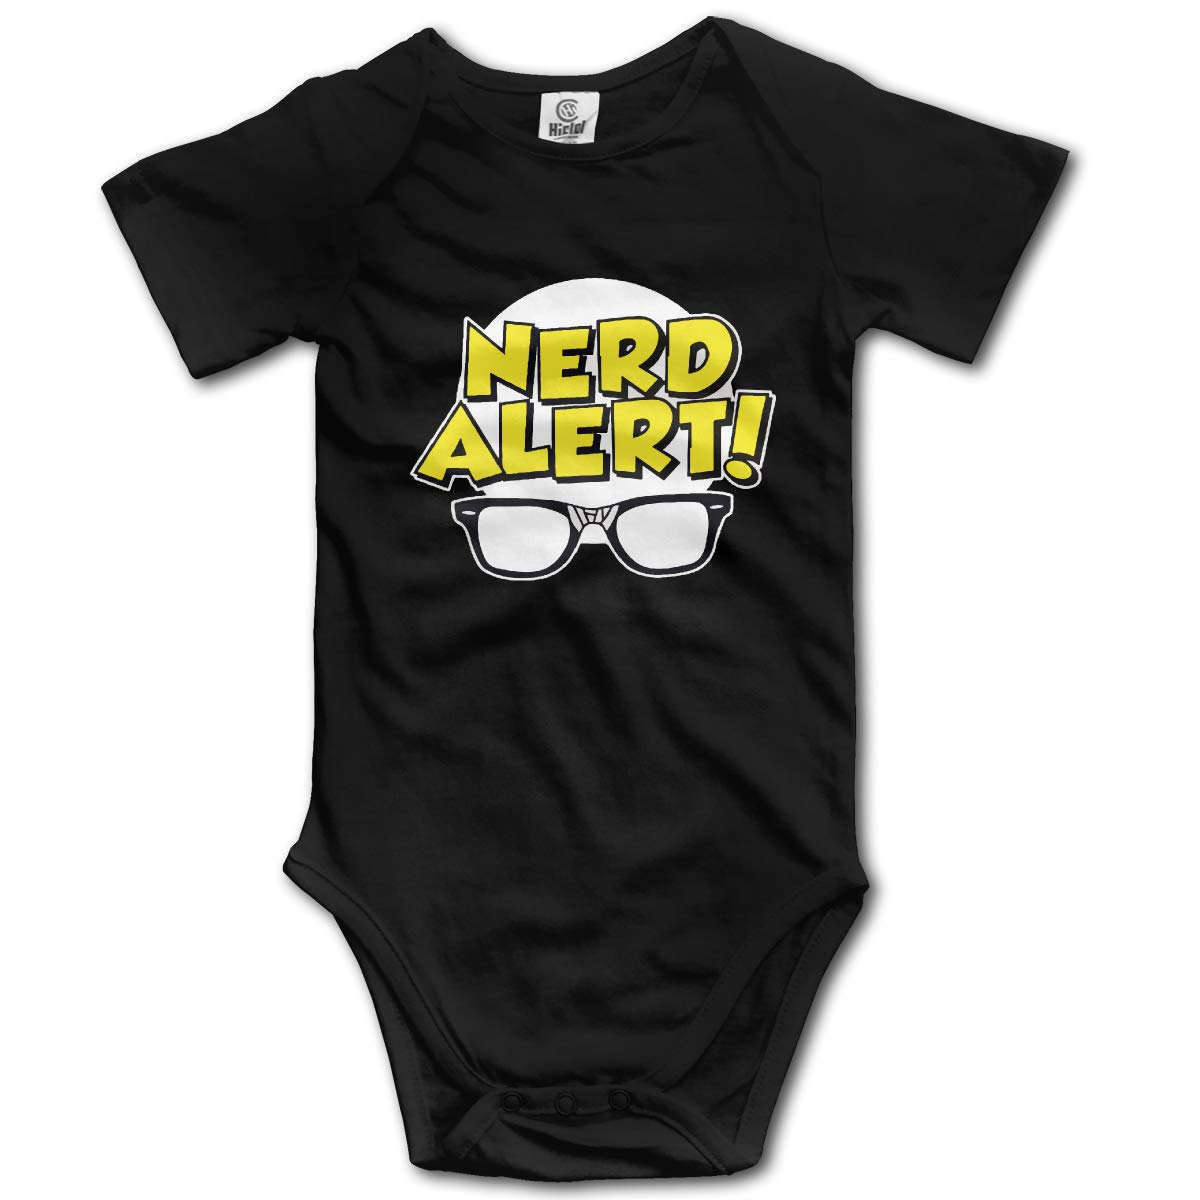 Nerd Alert Suit 6-24 Months Baby Short Sleeve Baby Clothes Climbing Clothes